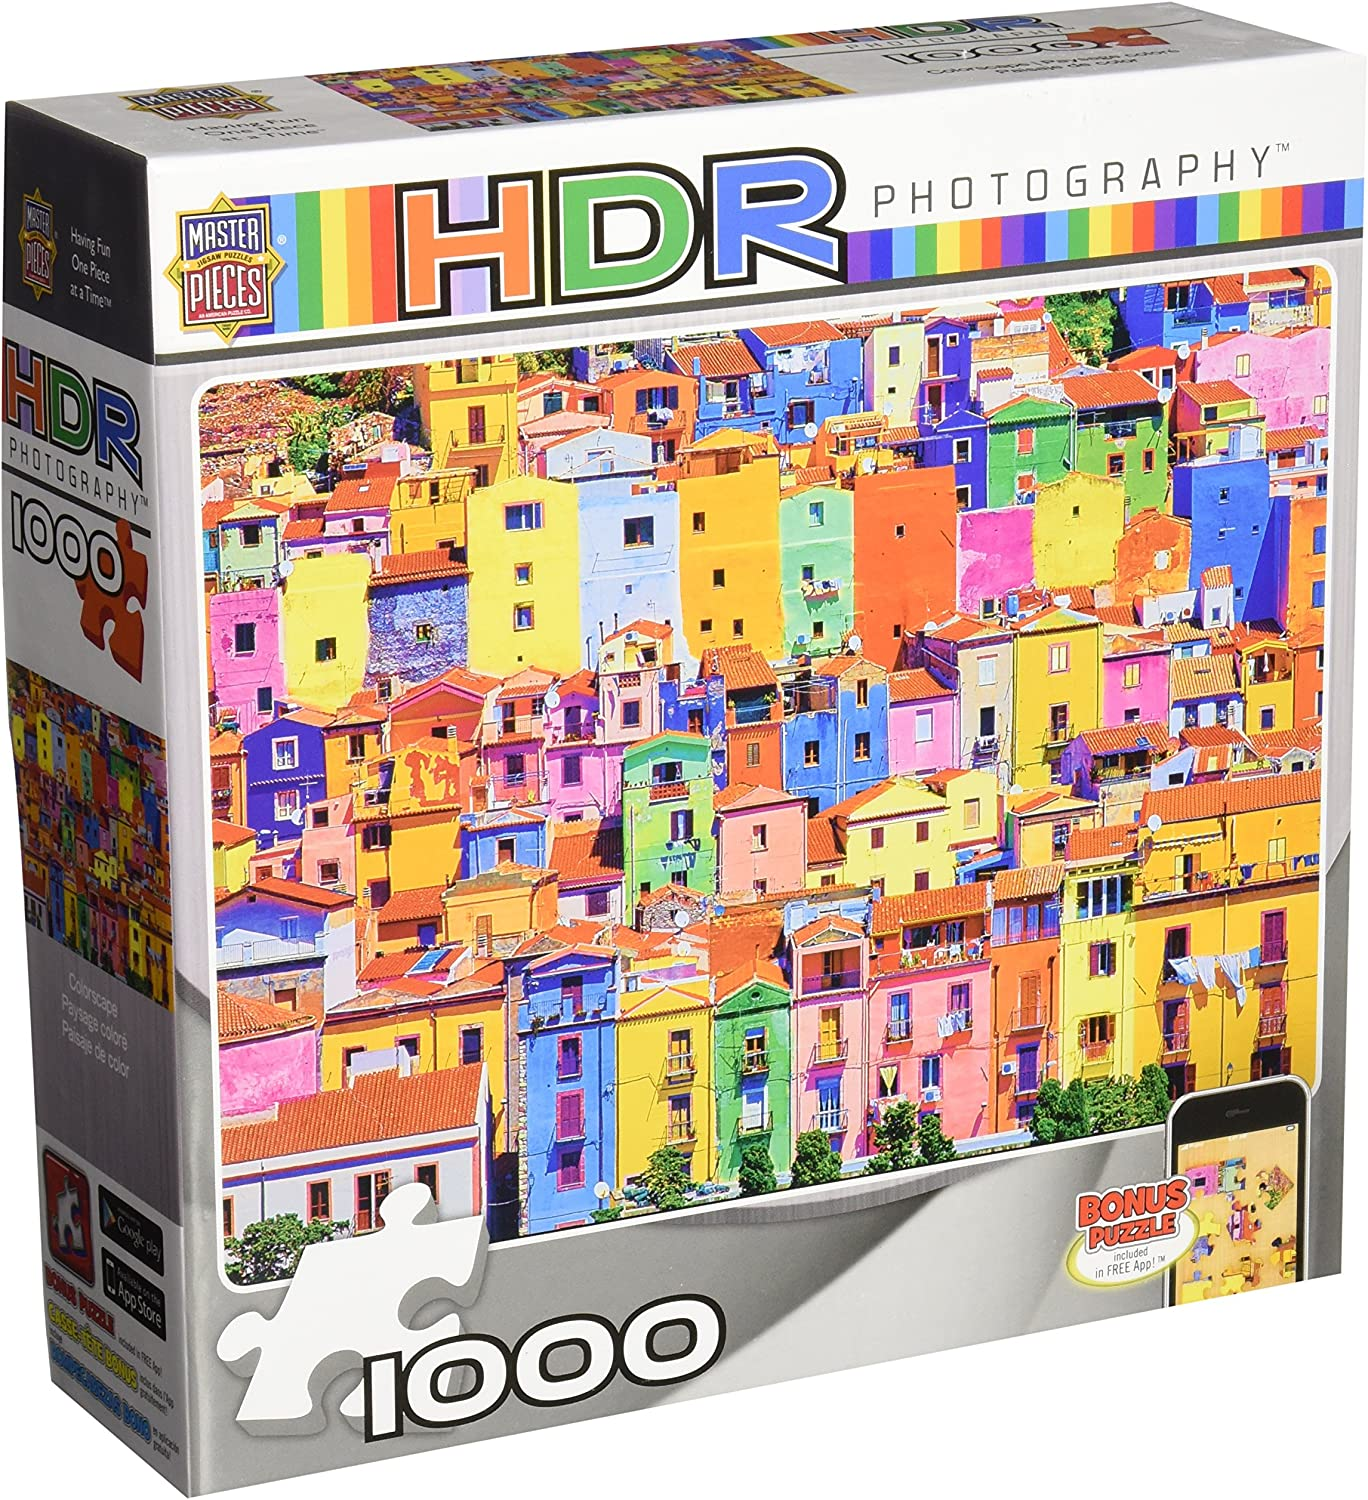 MasterPieces HDR Photography colorscape Jigsaw Puzzle, 1000Piece